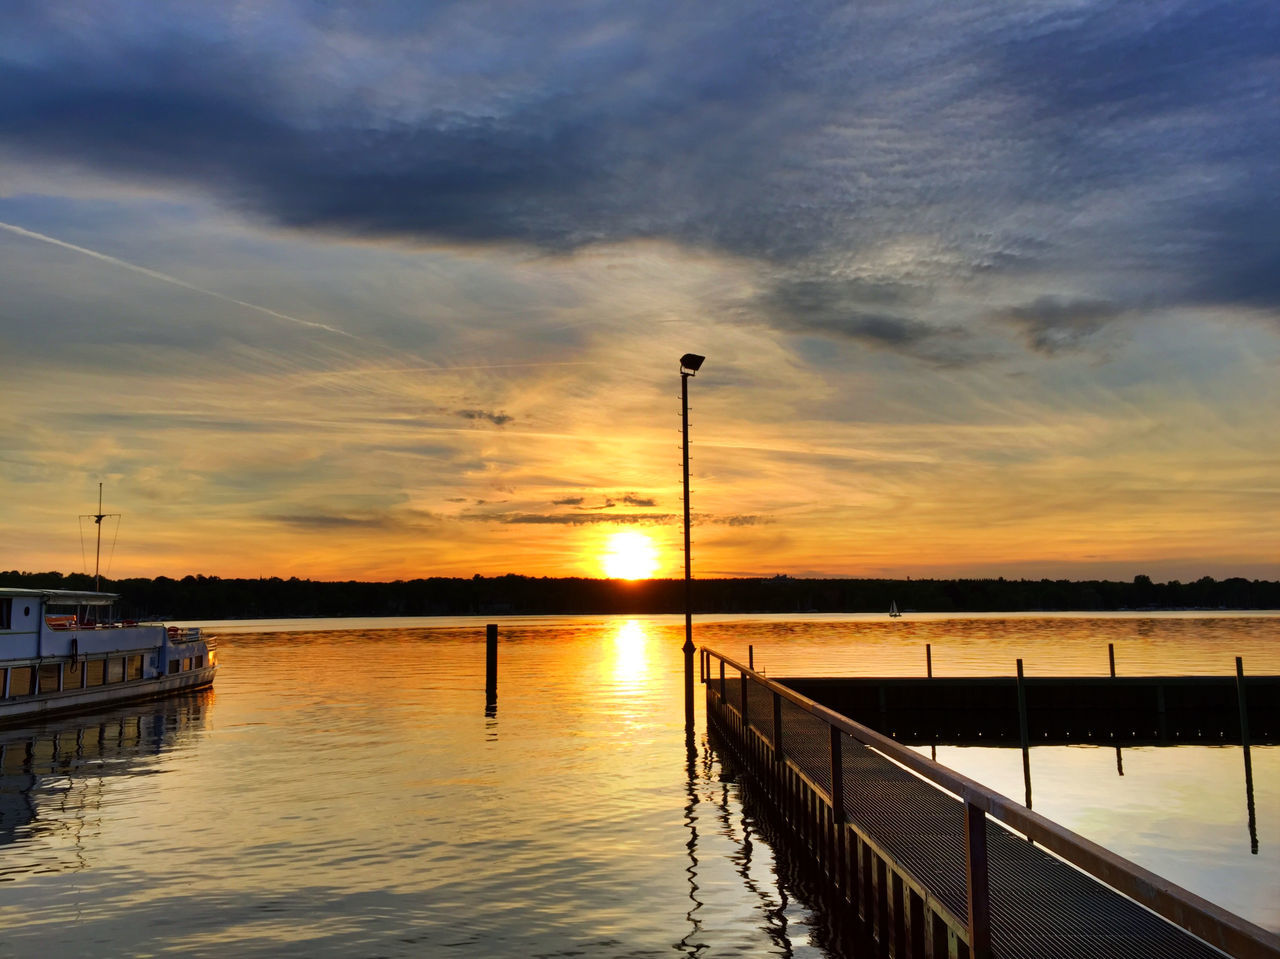 sunset, water, sky, built structure, nature, beauty in nature, no people, outdoors, scenics, cloud - sky, architecture, day